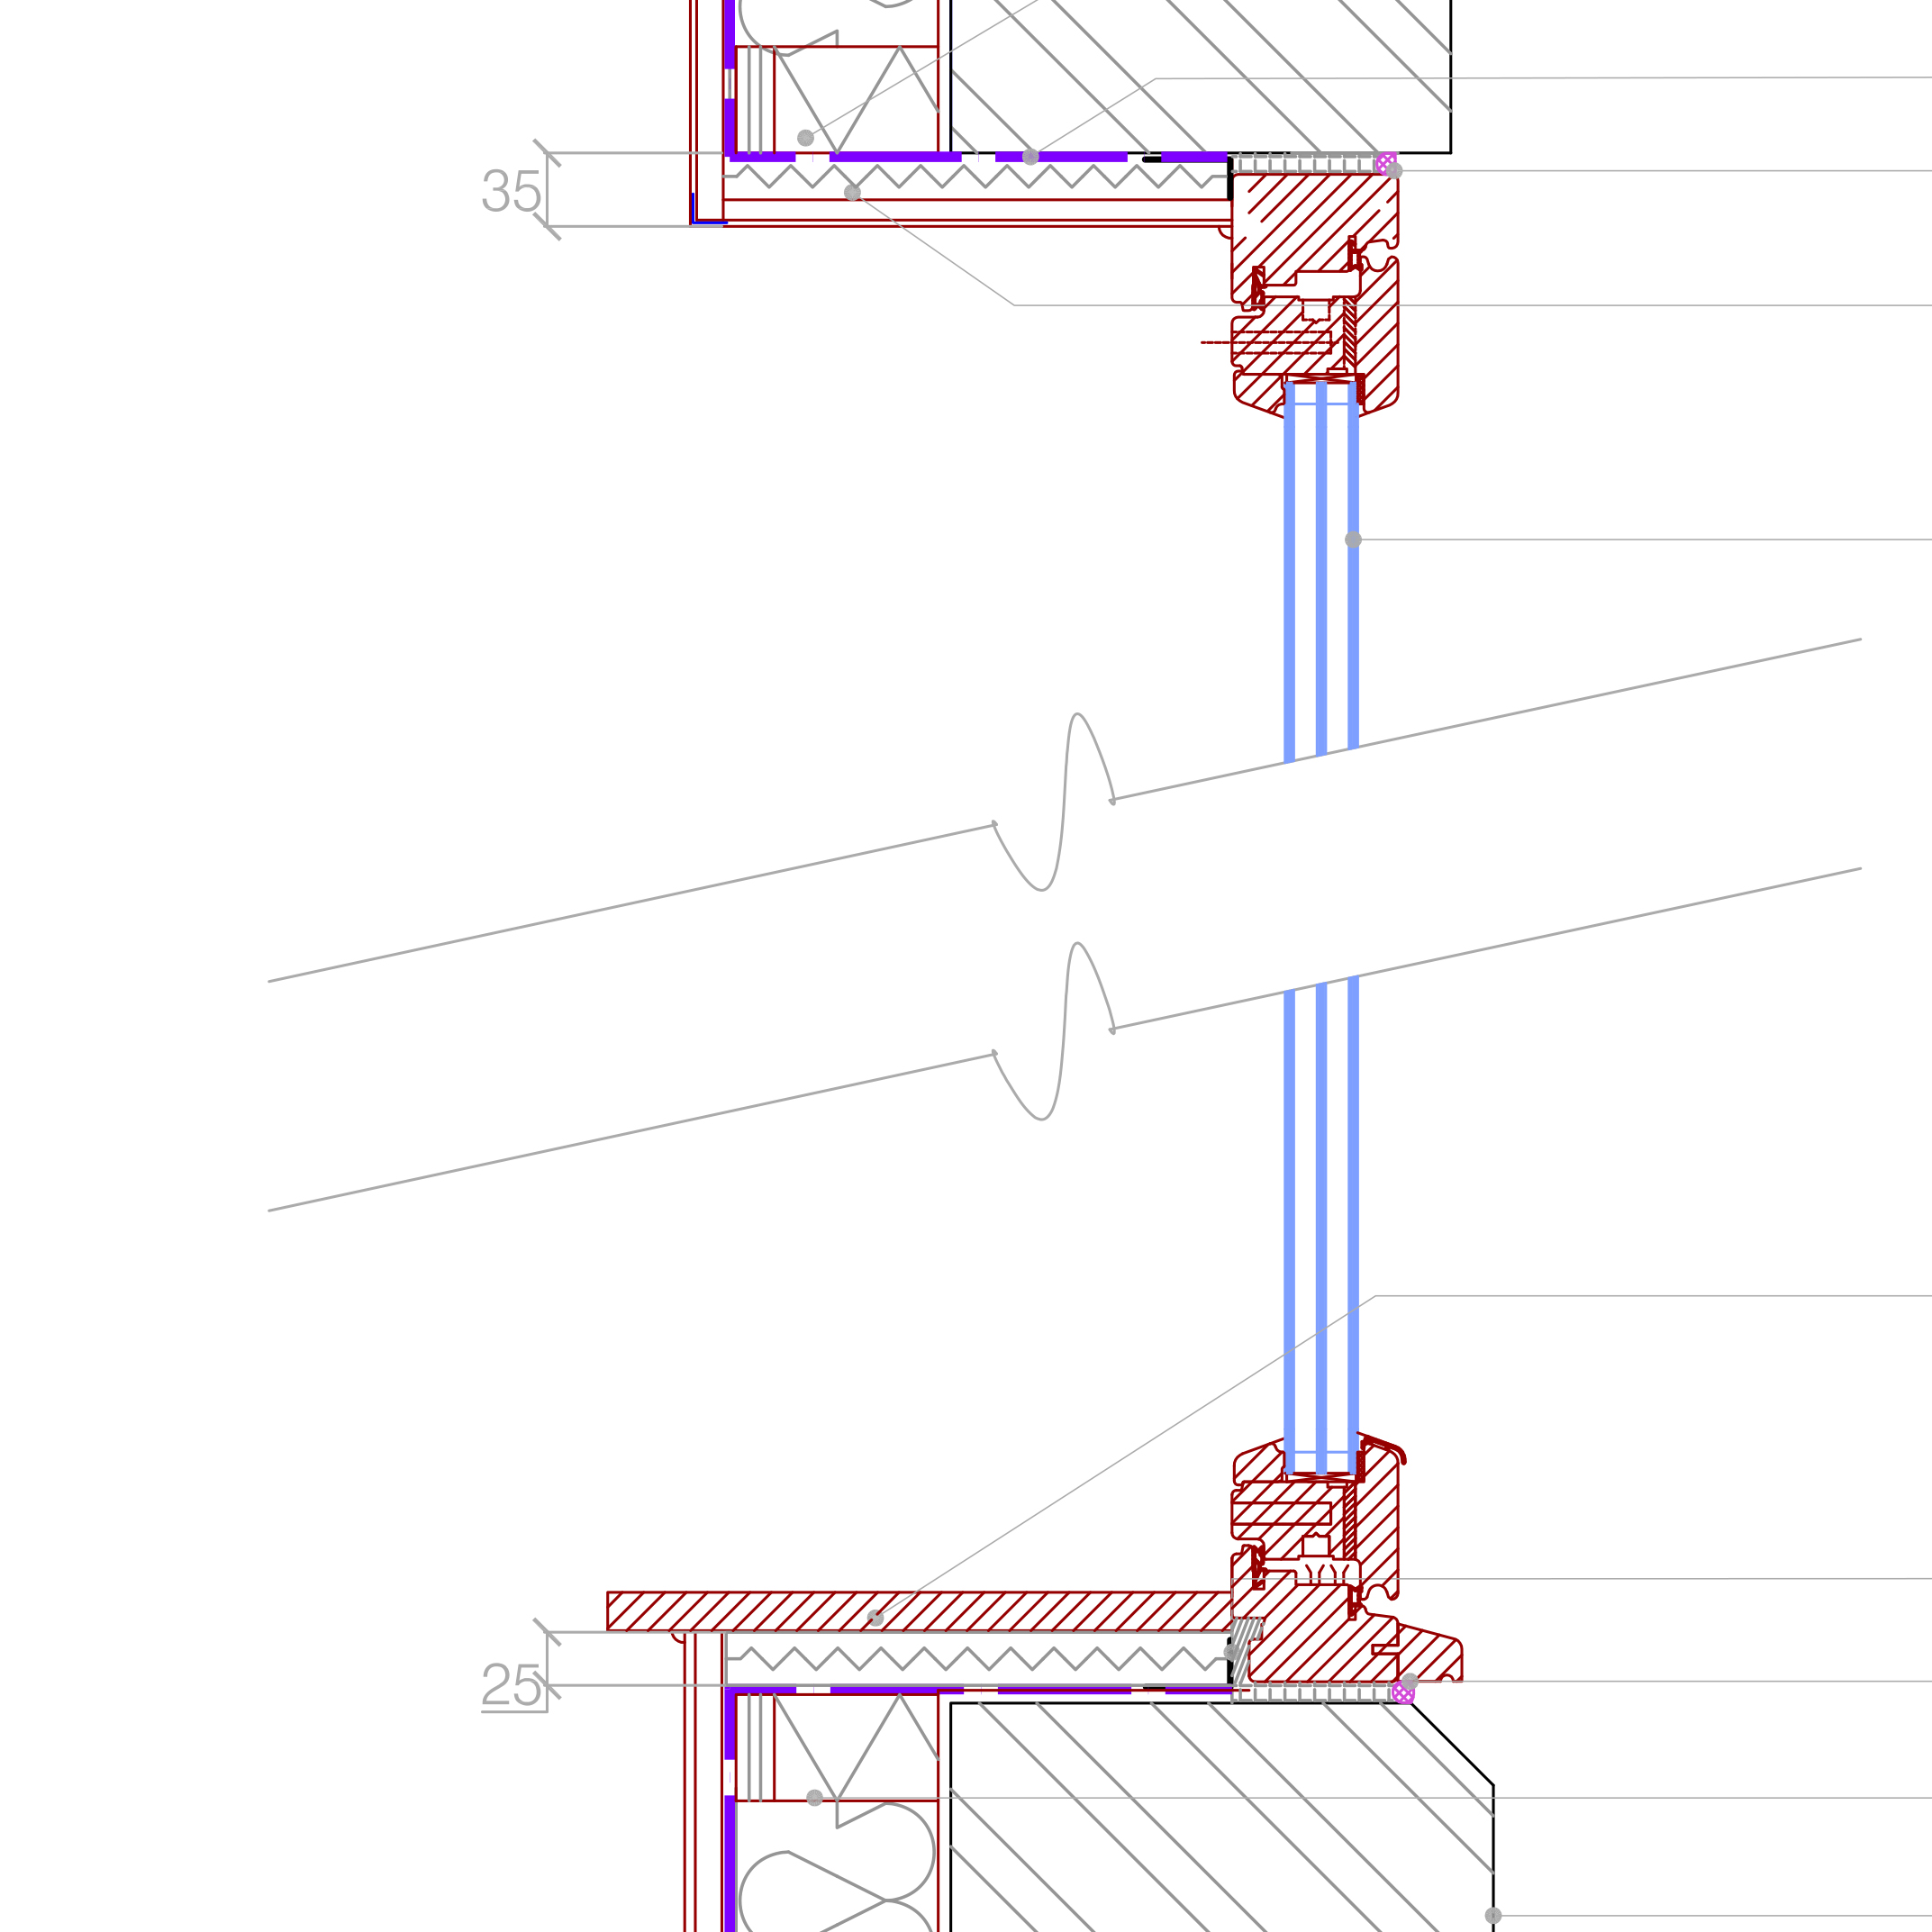 how to draw new and exisiting walls in autocad